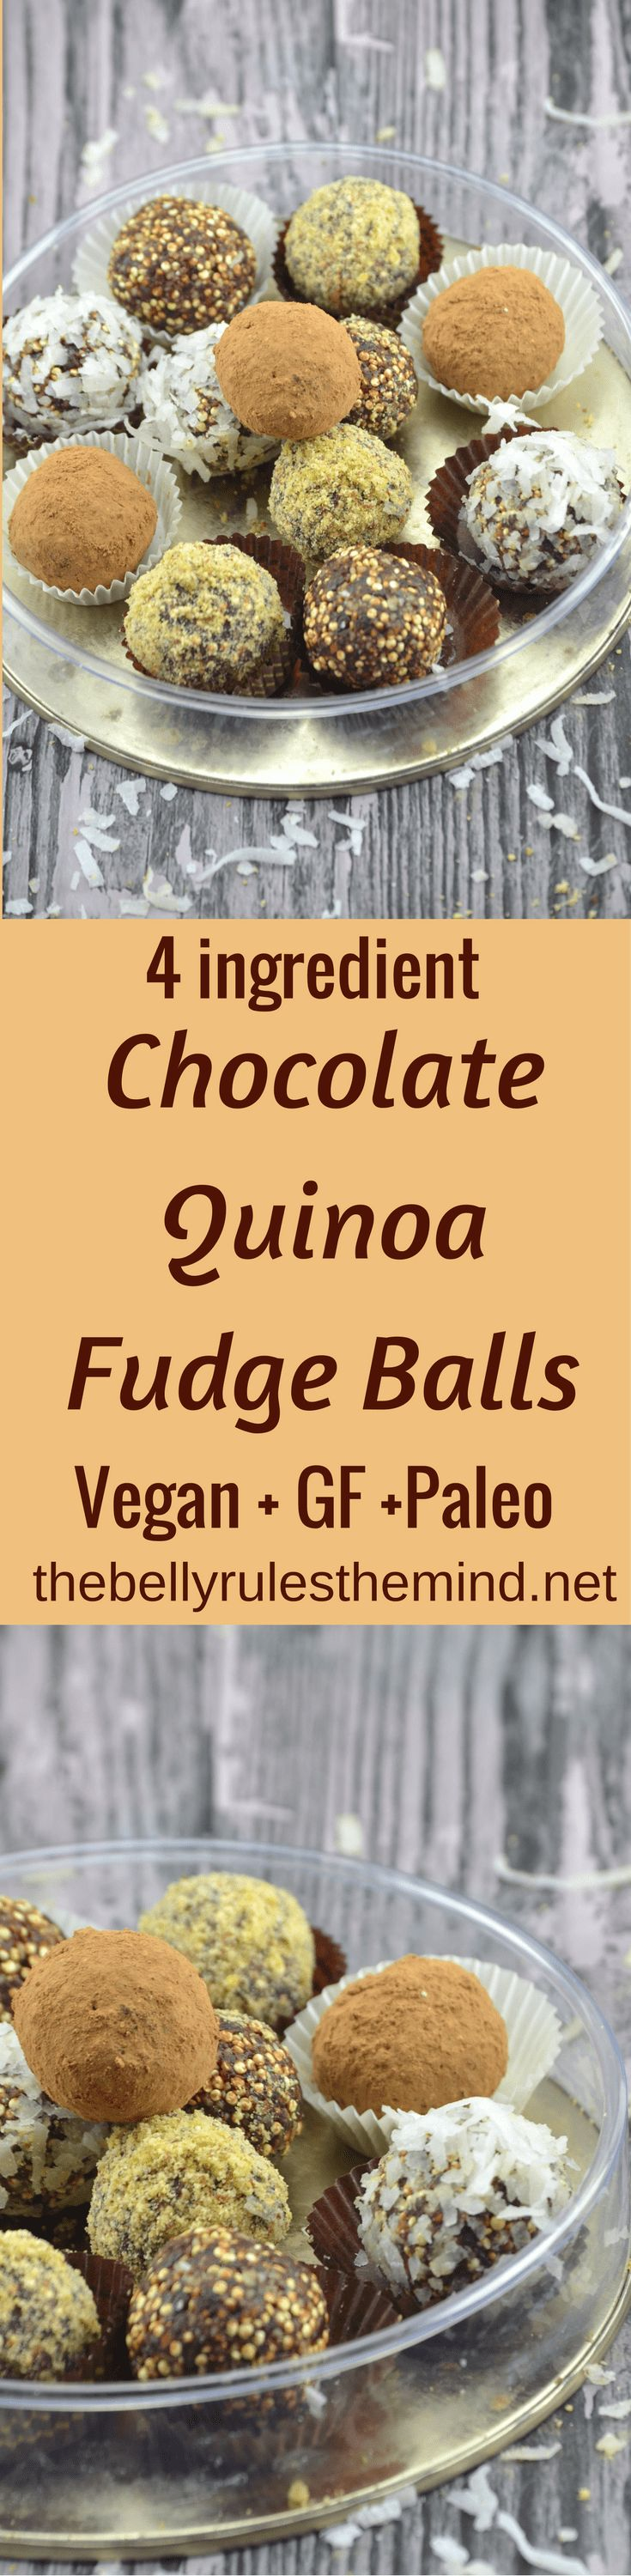 Chocolate Quinoa Fudge Balls :These energy balls work great as a pre or post-workout option for adults or an after school snack for kids.@dbellyrulesdmind